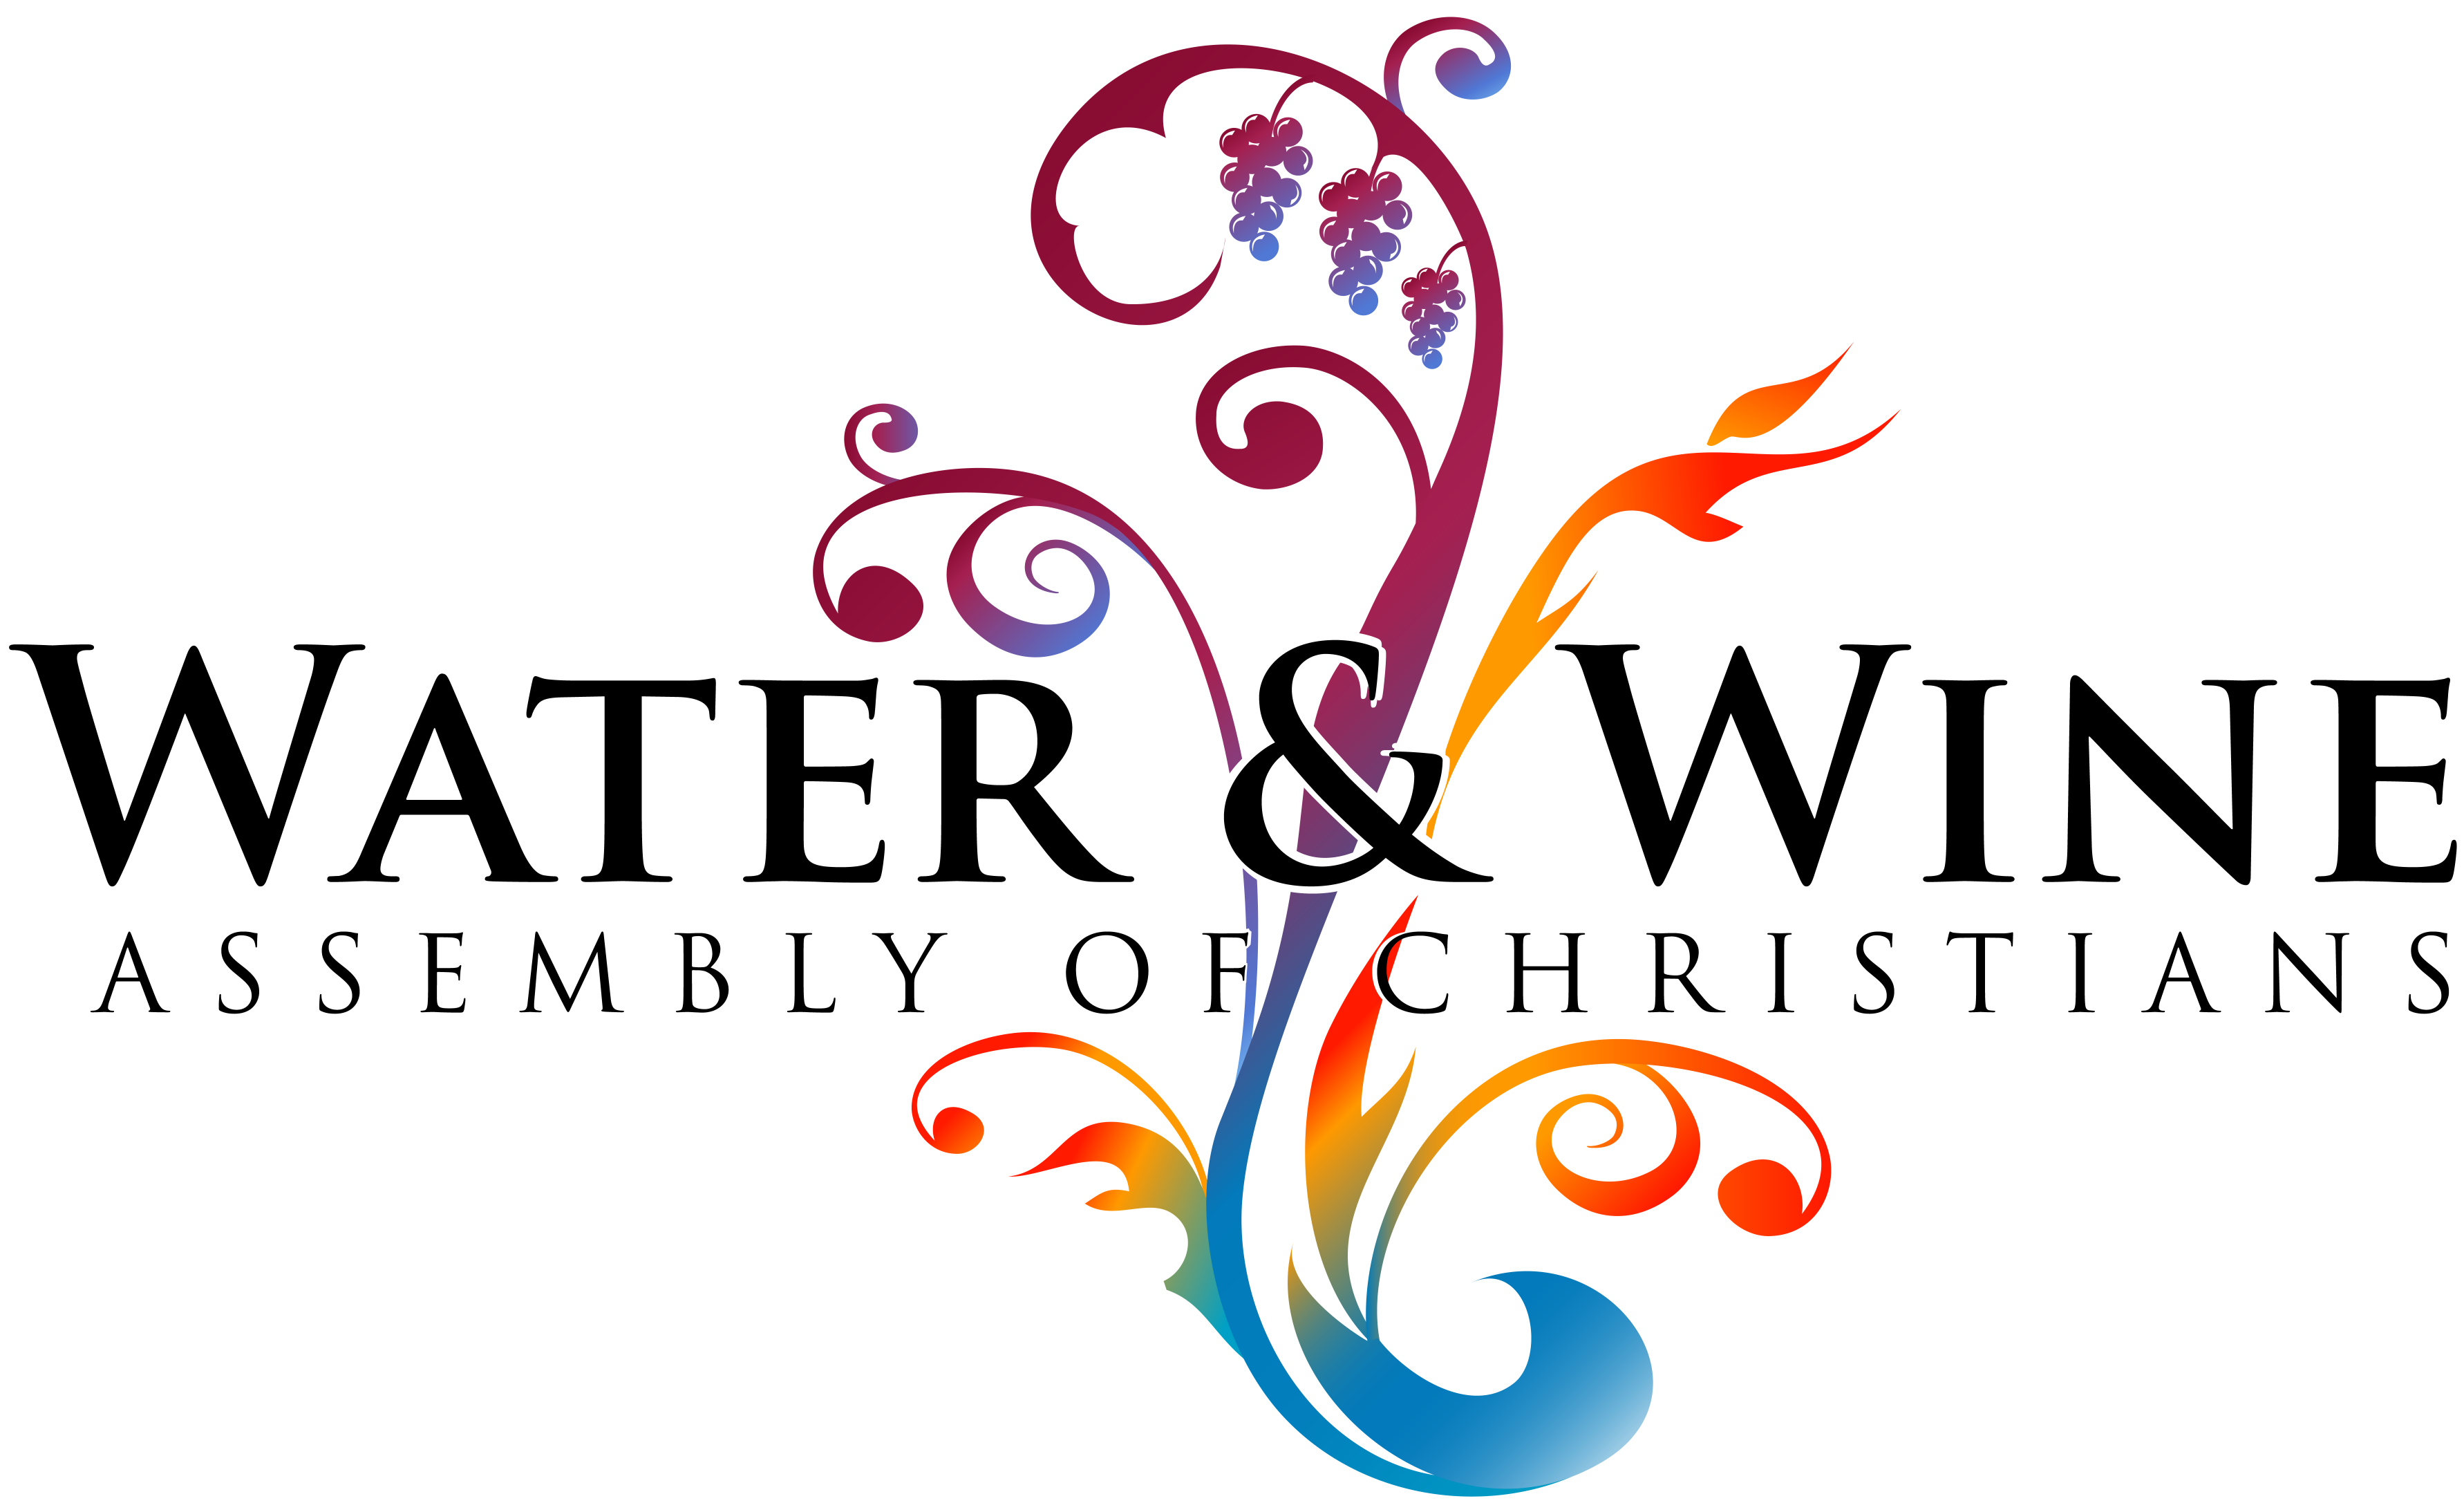 Water & Wine Assembly of Christians